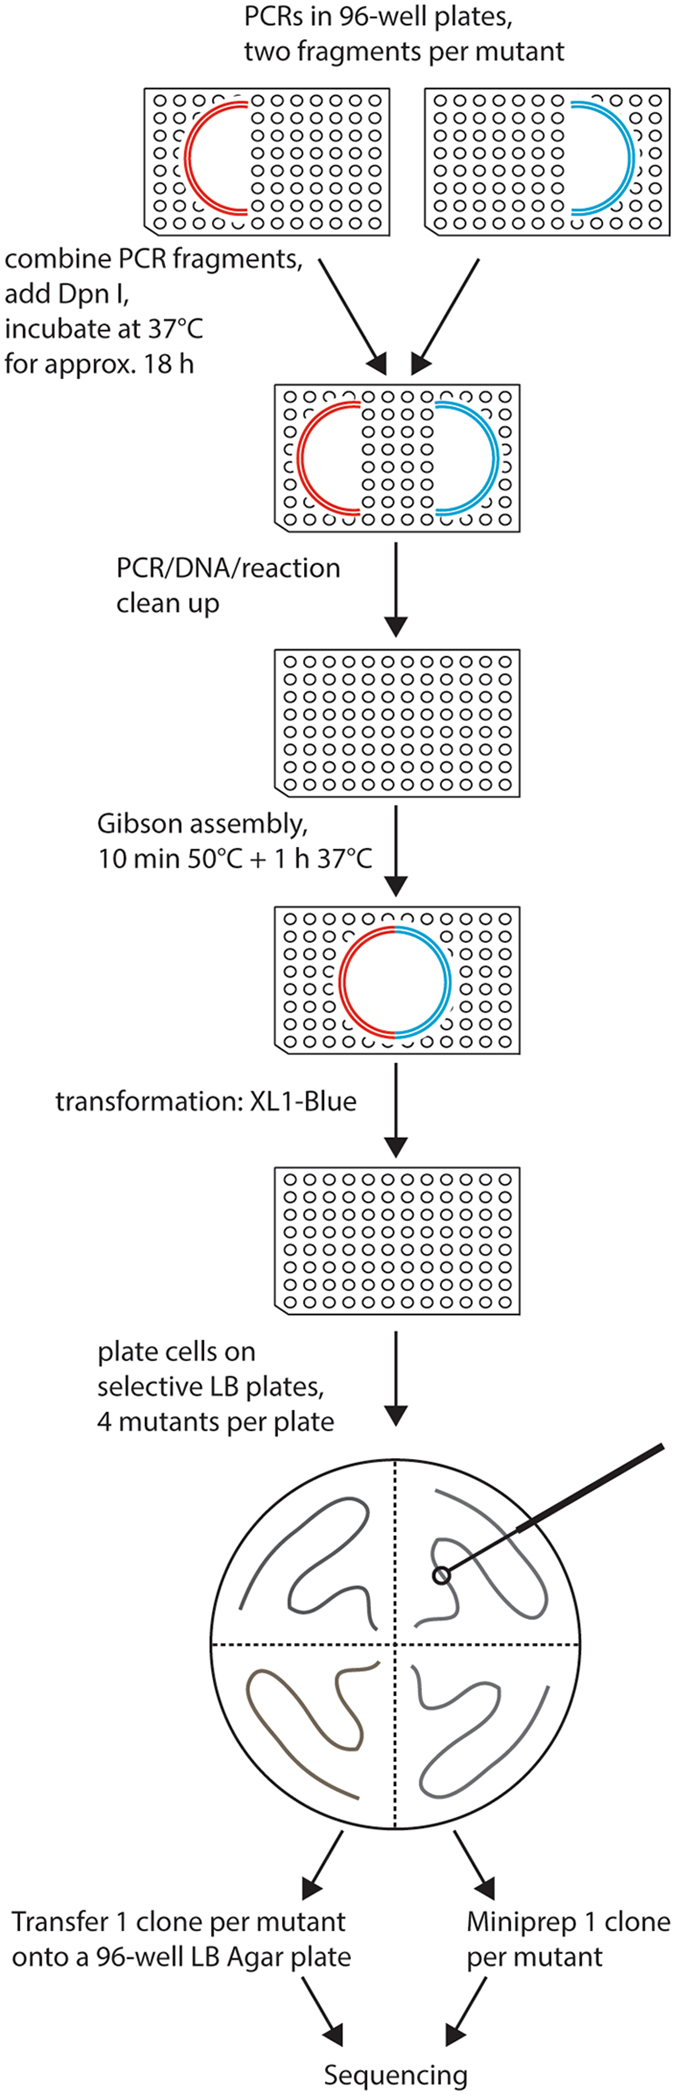 Overview of the mutagenesis technique. Two PCR reactions are done per mutant, in each of them approximately half of the vector is amplified. Two fragments containing one mutation are combined, followed by DpnI digestion at 37 °C overnight. Reaction clean-up is performed to purify DNA fragments, which are then assembled by Gibson assembly reaction. Bacteria are transformed with the resulting circular plasmid and plated on selective LB agar plates. One clone per mutant is sent for sequencing either on a selective LB agar 96-well plate or as purified DNA. All steps excluding the plating of the bacteria are done in 96-well plates.